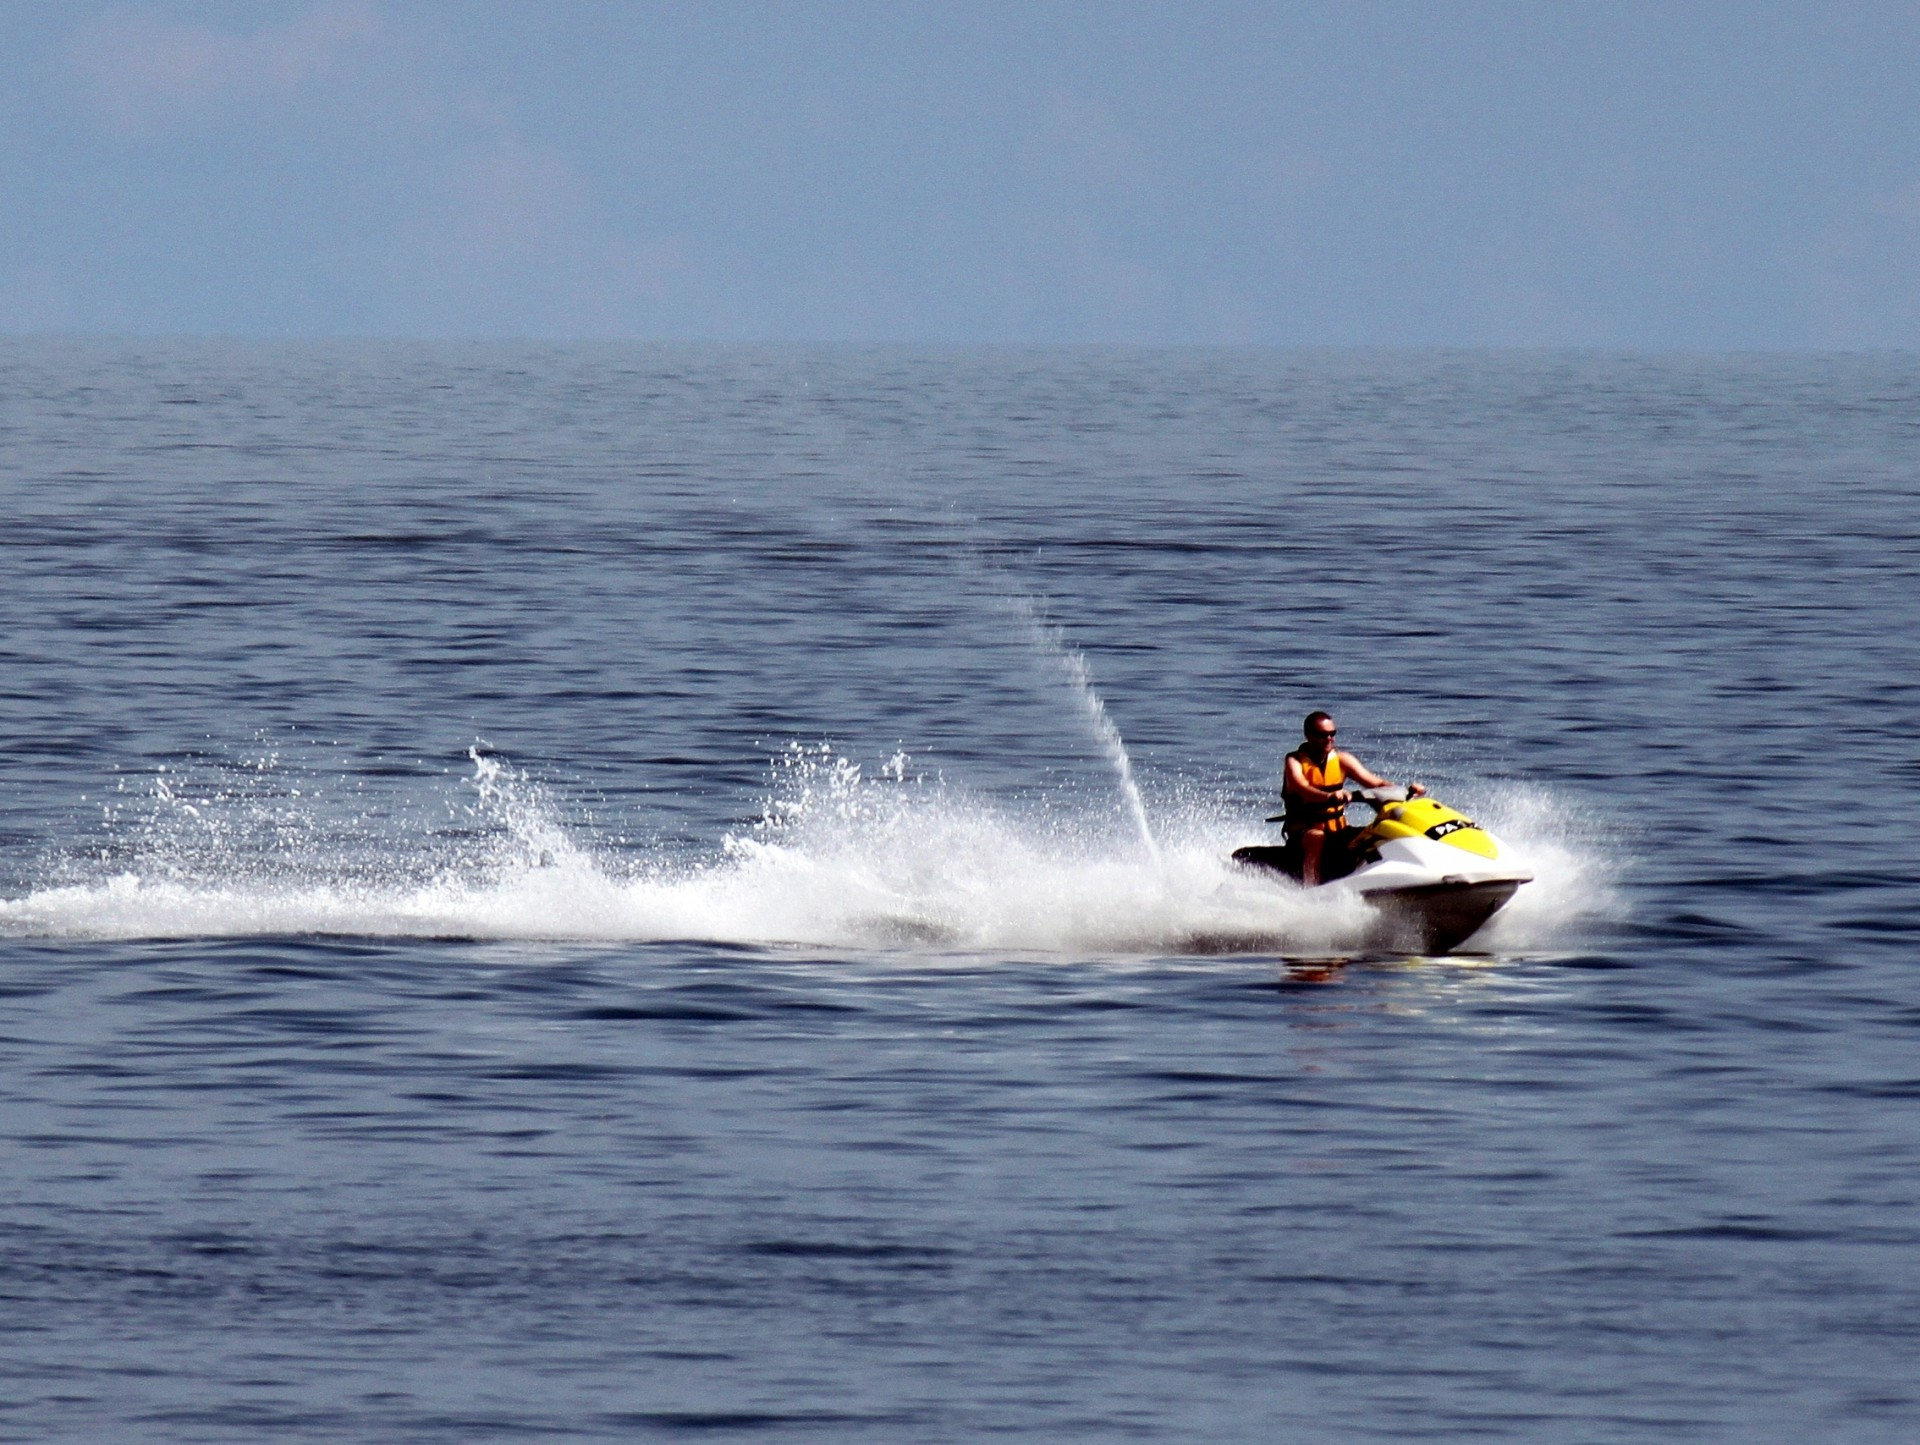 Gratis Jet Ski Jet Ski On The Sea Free Stock Photo Public Domain Pictures